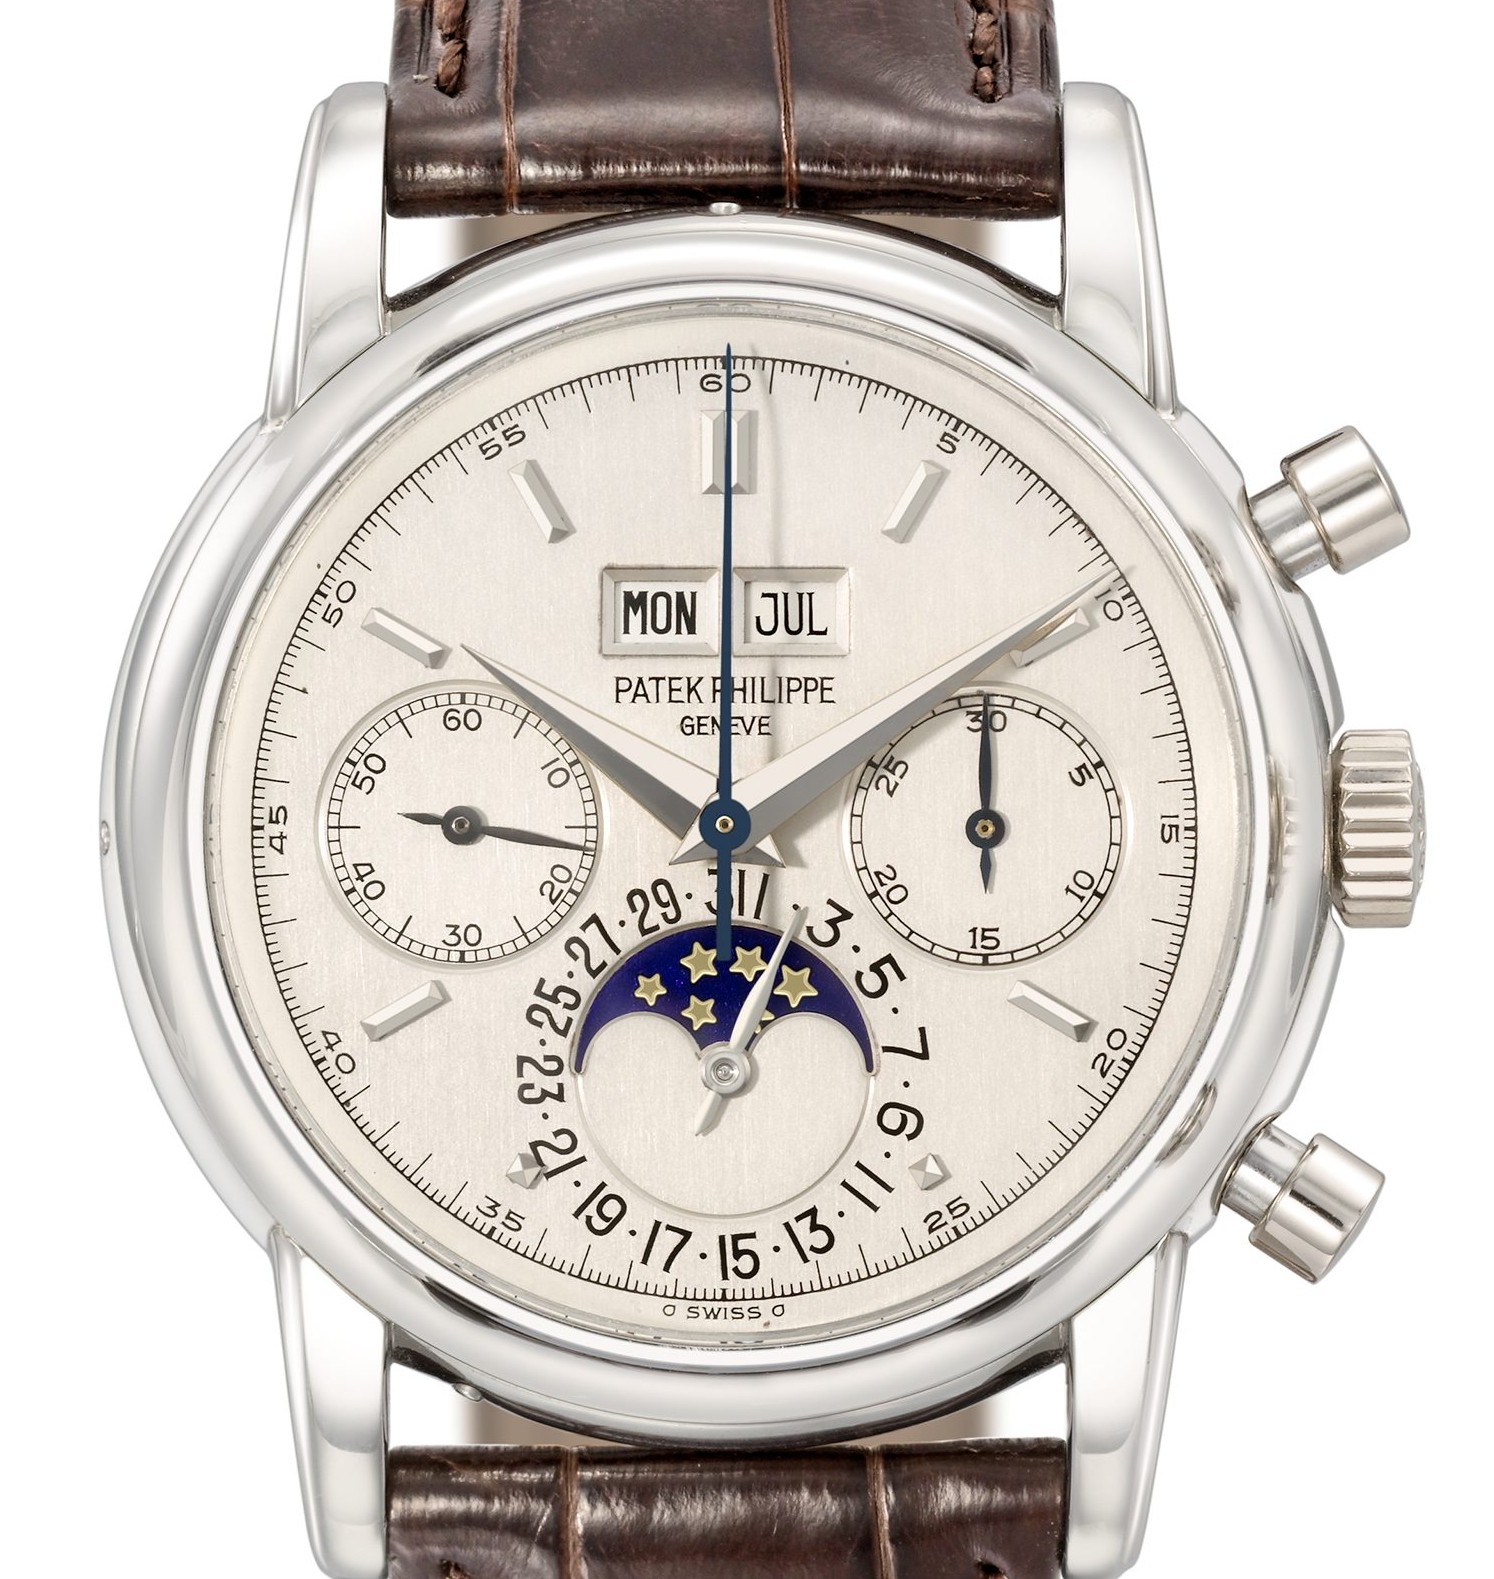 "This ""exceptionally rare"" Patek Phillipe watch owned by Eric Clapton which sold at auction for £2.2 million"